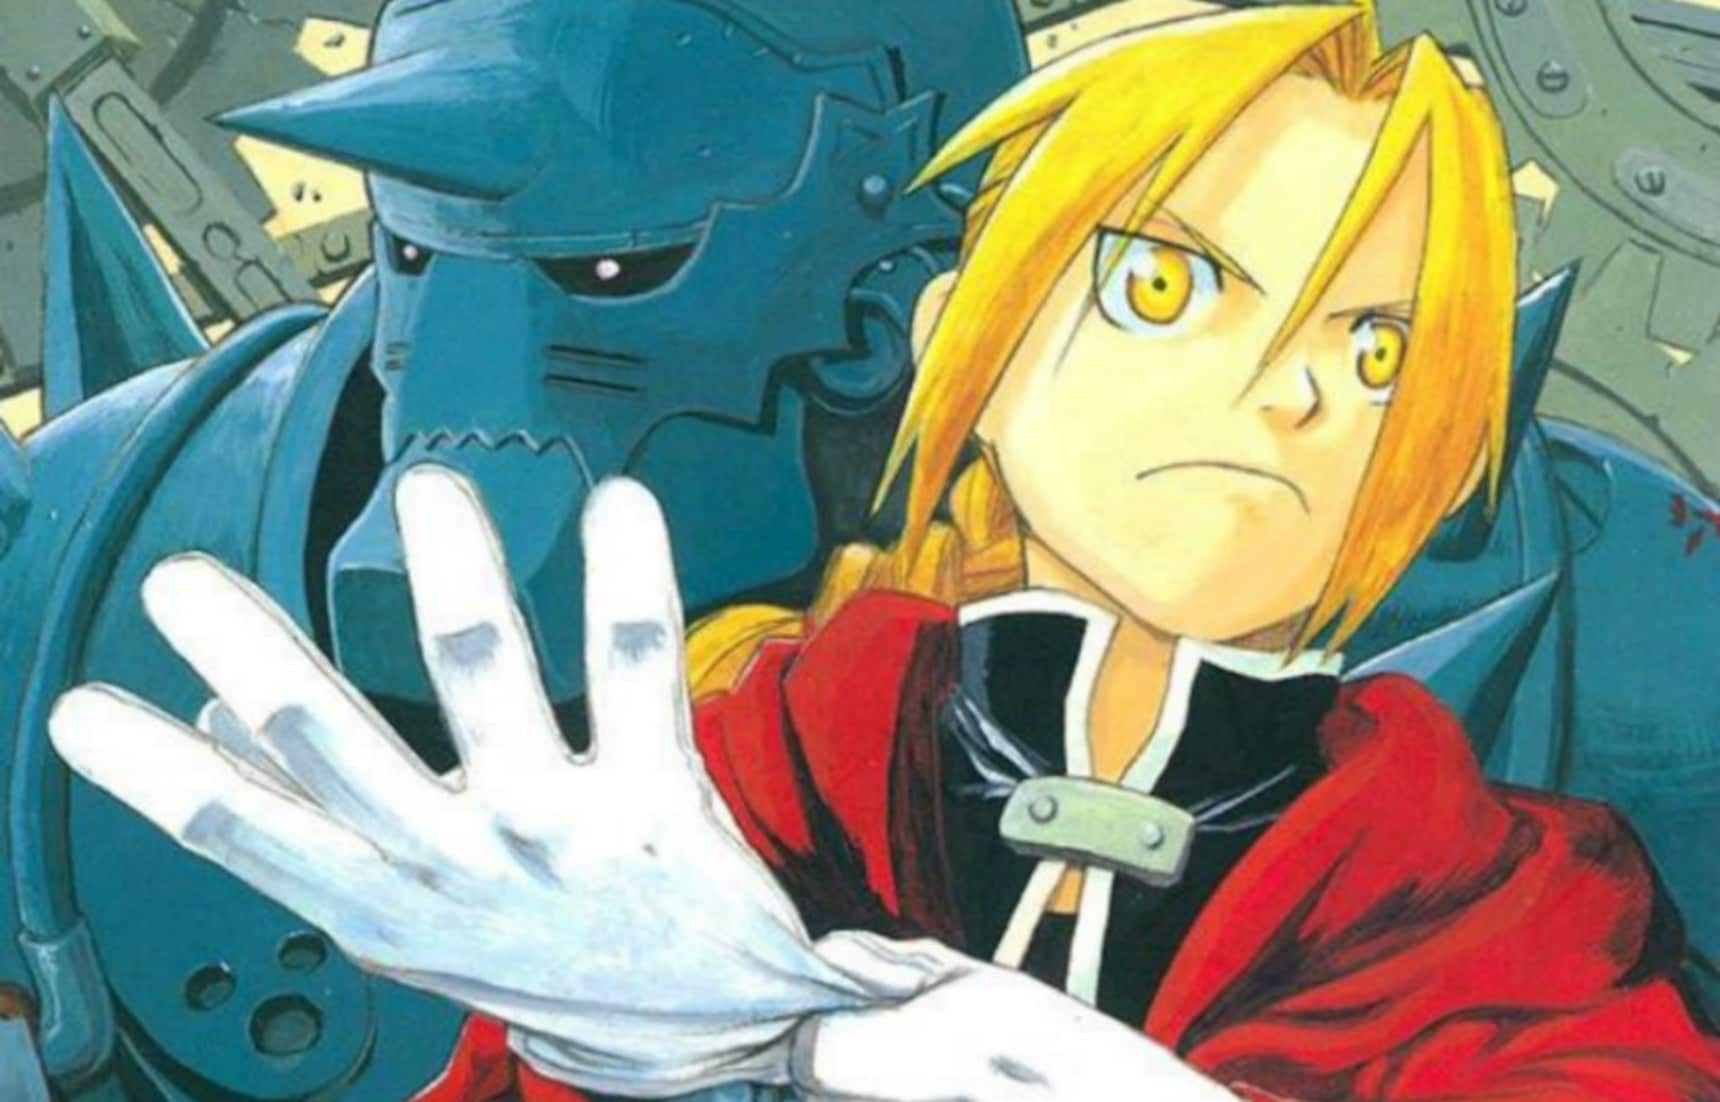 'Fullmetal Alchemist' to Get a New Chapter